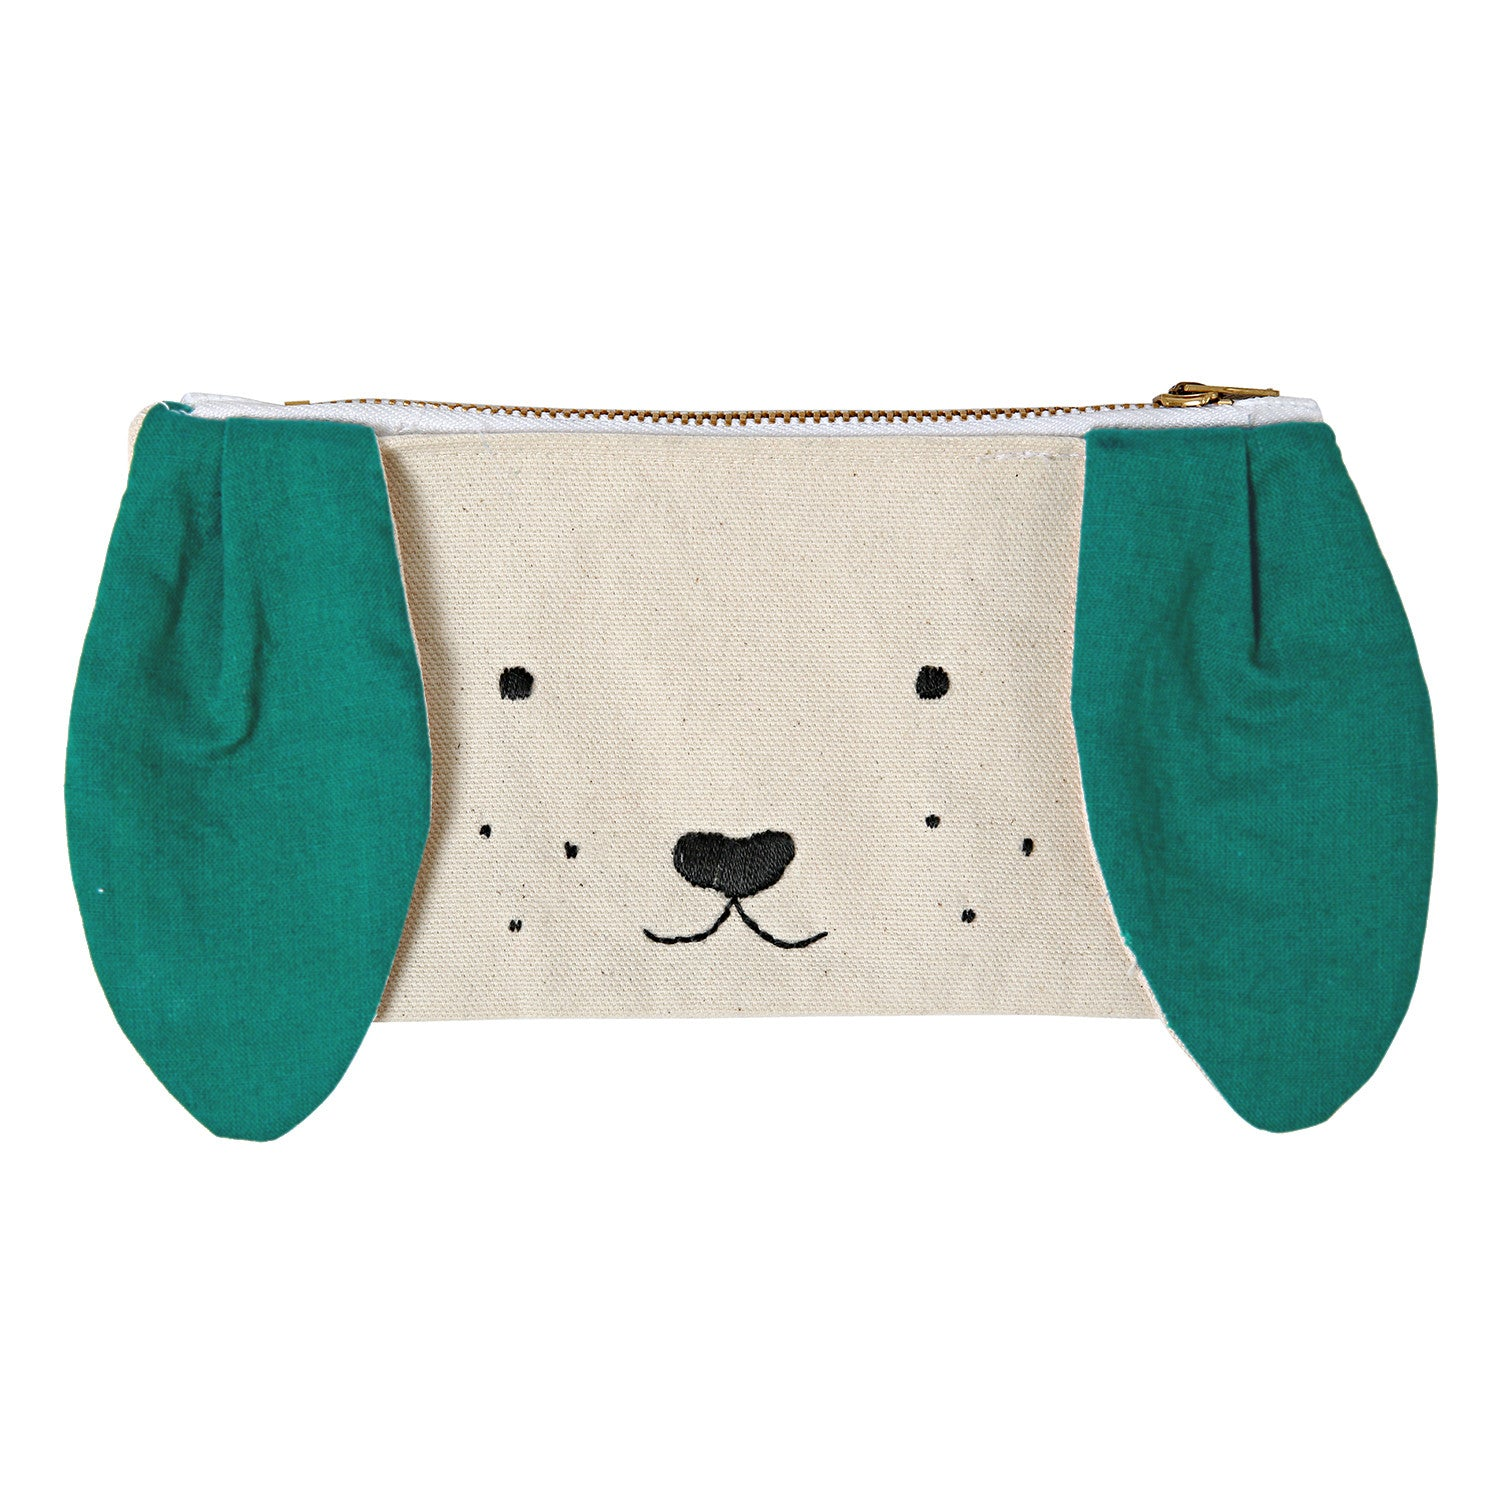 Dog Pouch - Meri Meri - Little Citizens Boutique  - 1